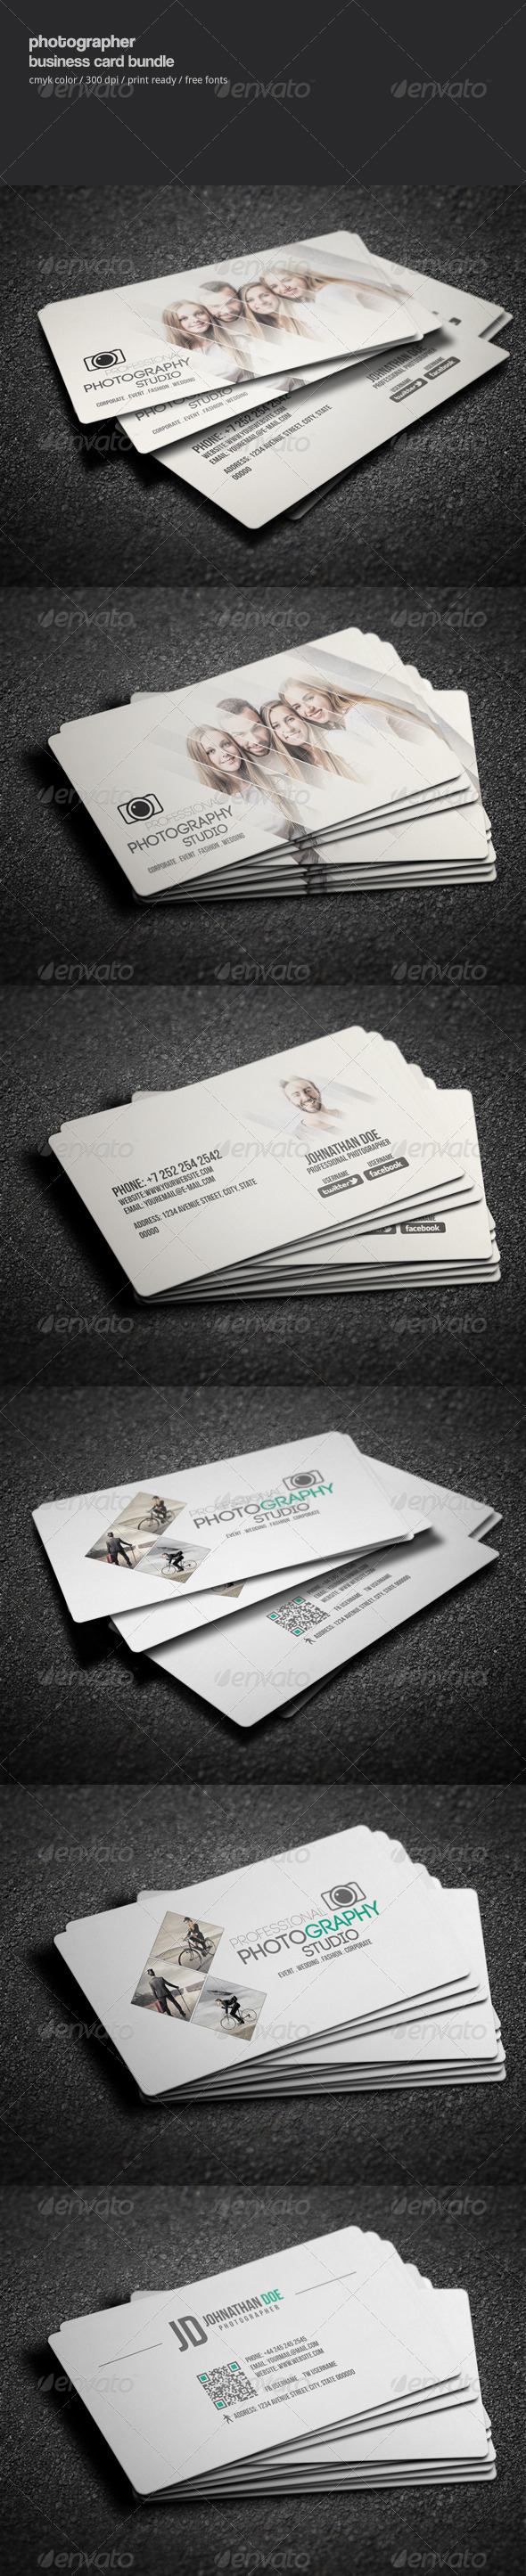 GraphicRiver Photographer Business Card Bundle 8294589